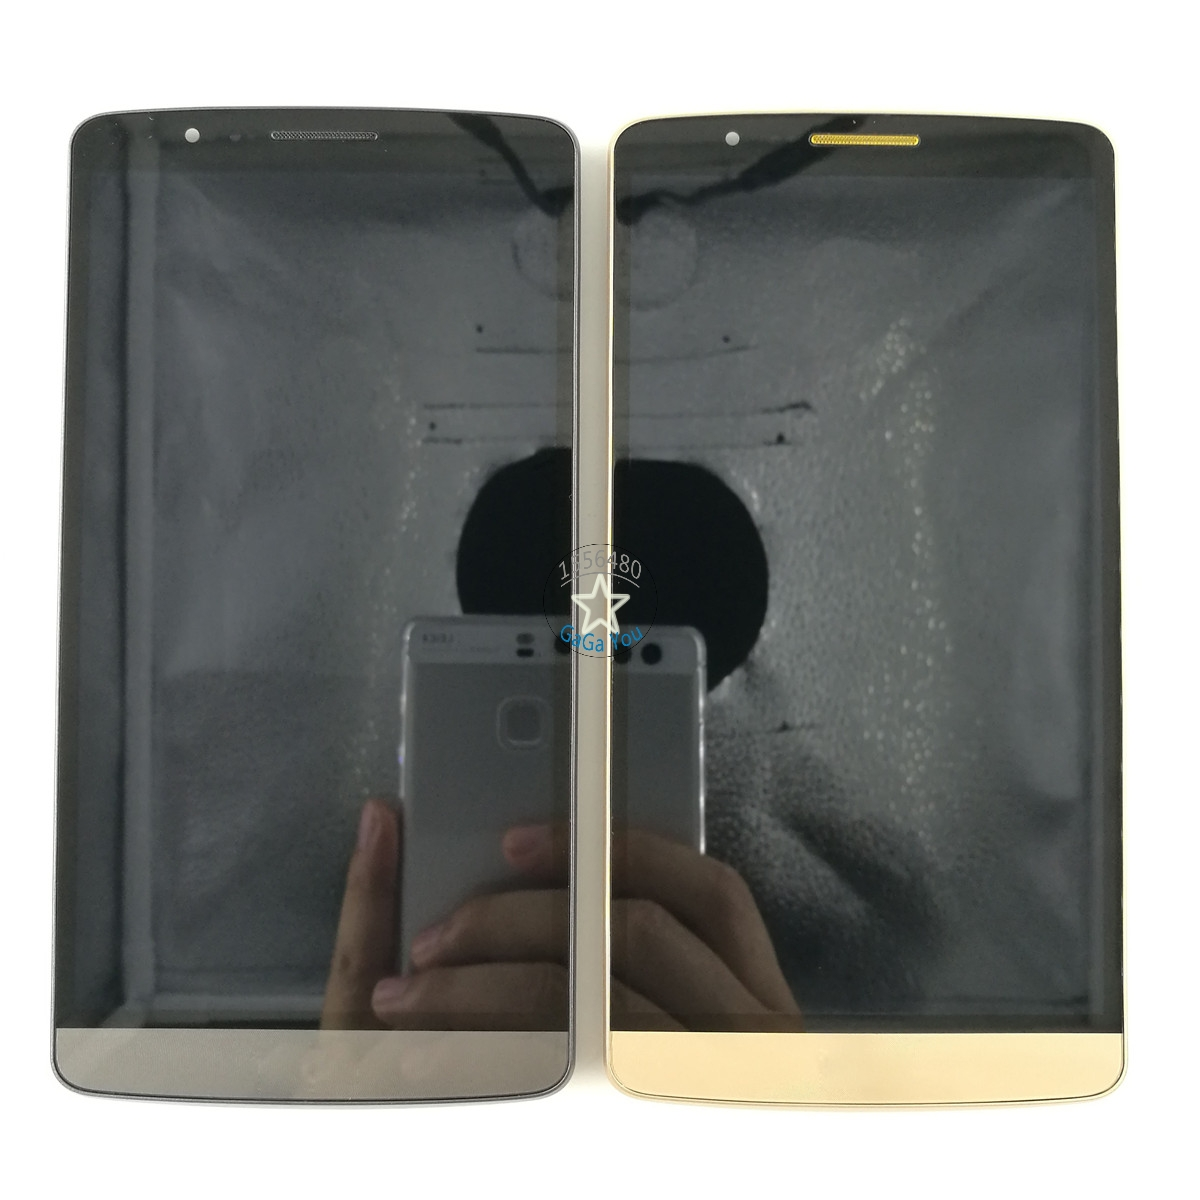 ФОТО Original LCD Display Touch Screen Digitizer Assembly + Frame For LG G3 D850 D851 D852 D855 High Quality LCD Screen Parts